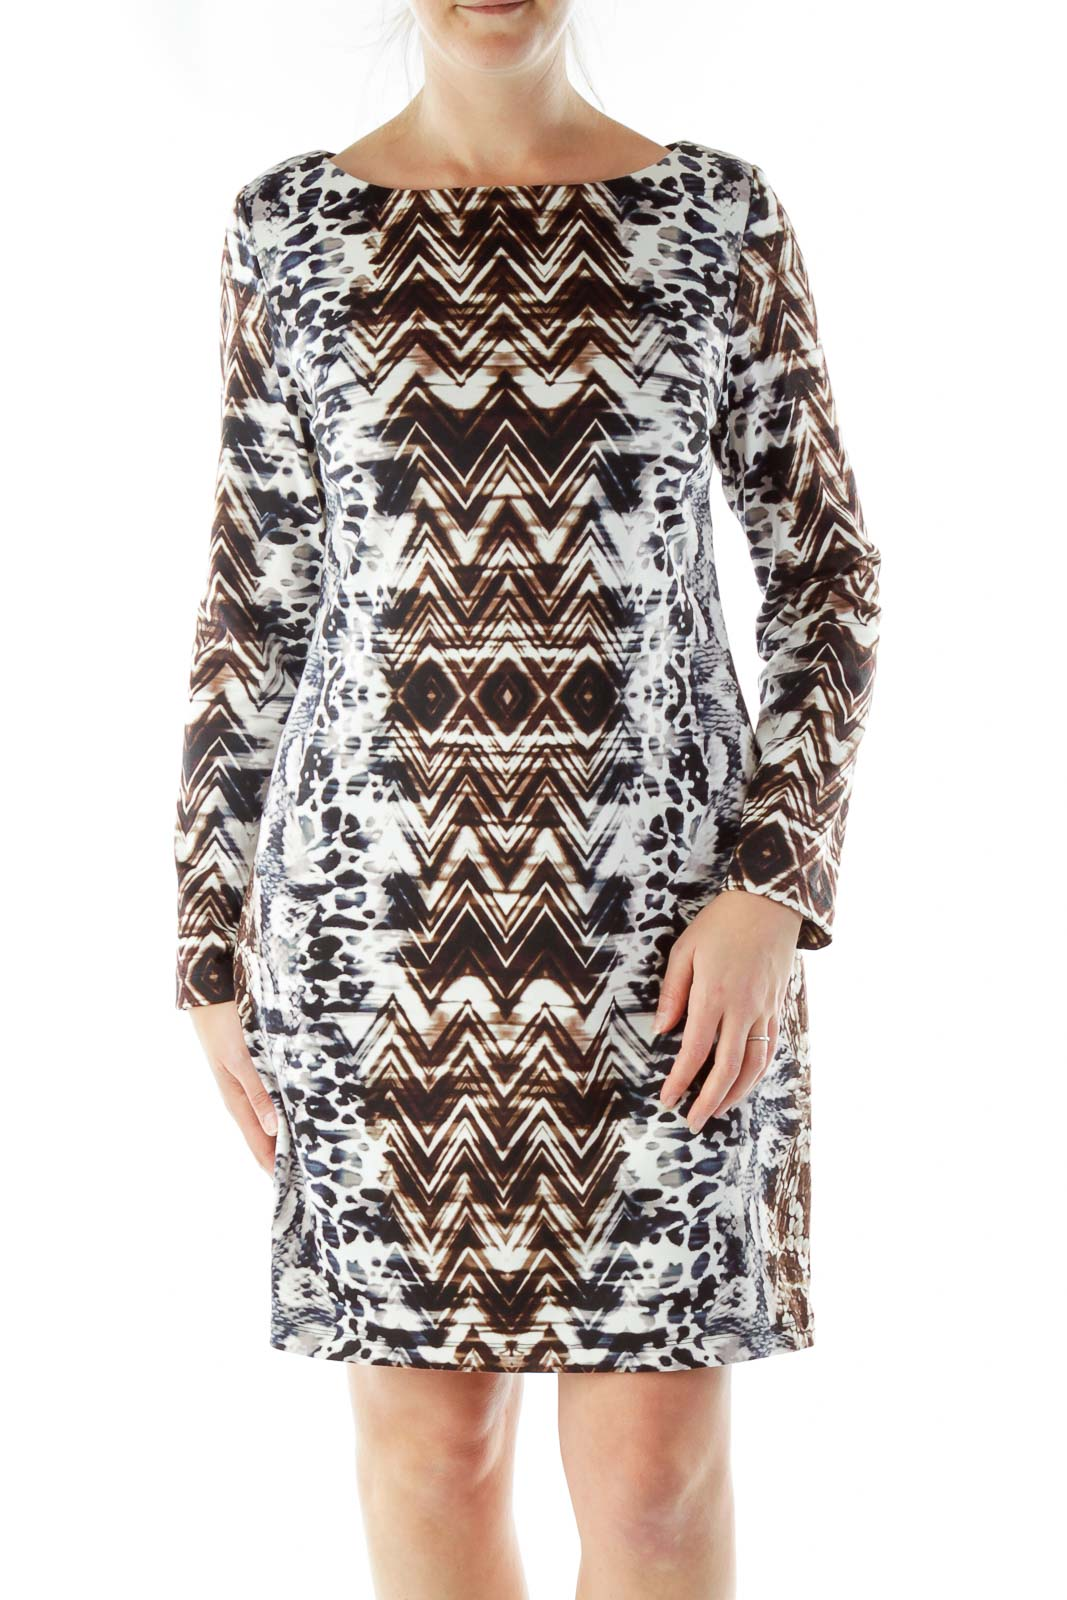 Blue Cream Brown Tie Dye Work Dress